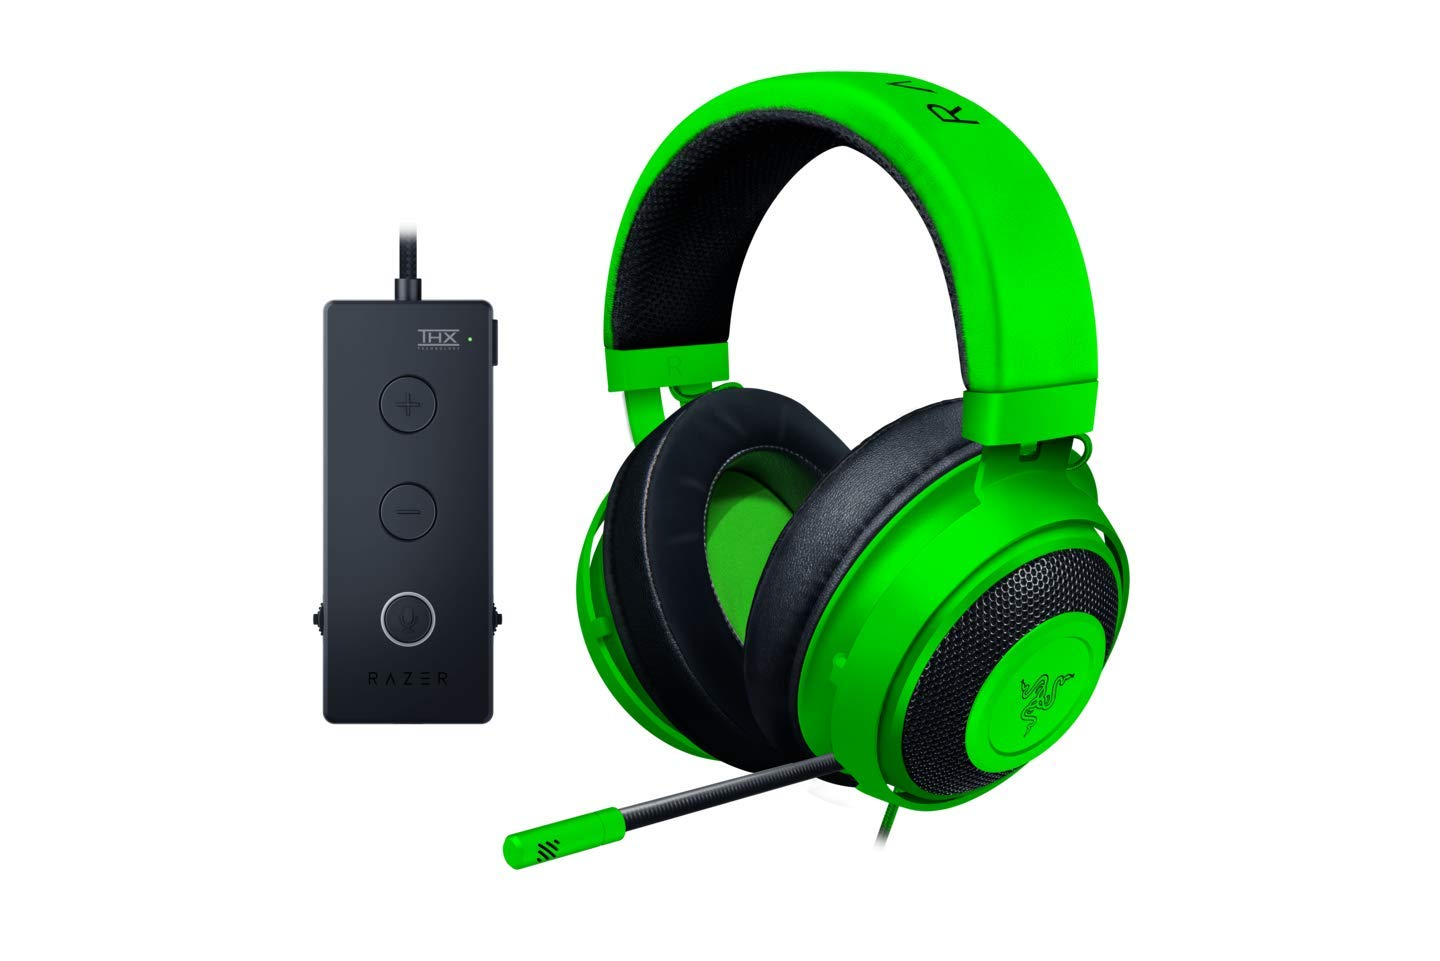 Razer Kraken Tournament Edition: THX Spatial Audio - Customize Audio and Mic Controls - Cooling Gel-Infused Ear Cusions -Gaming Headset Works with PC, PS4, Xbox One, Switch, Mobile Devices - Black Razer Inc. RZ04-02051000-R3U1